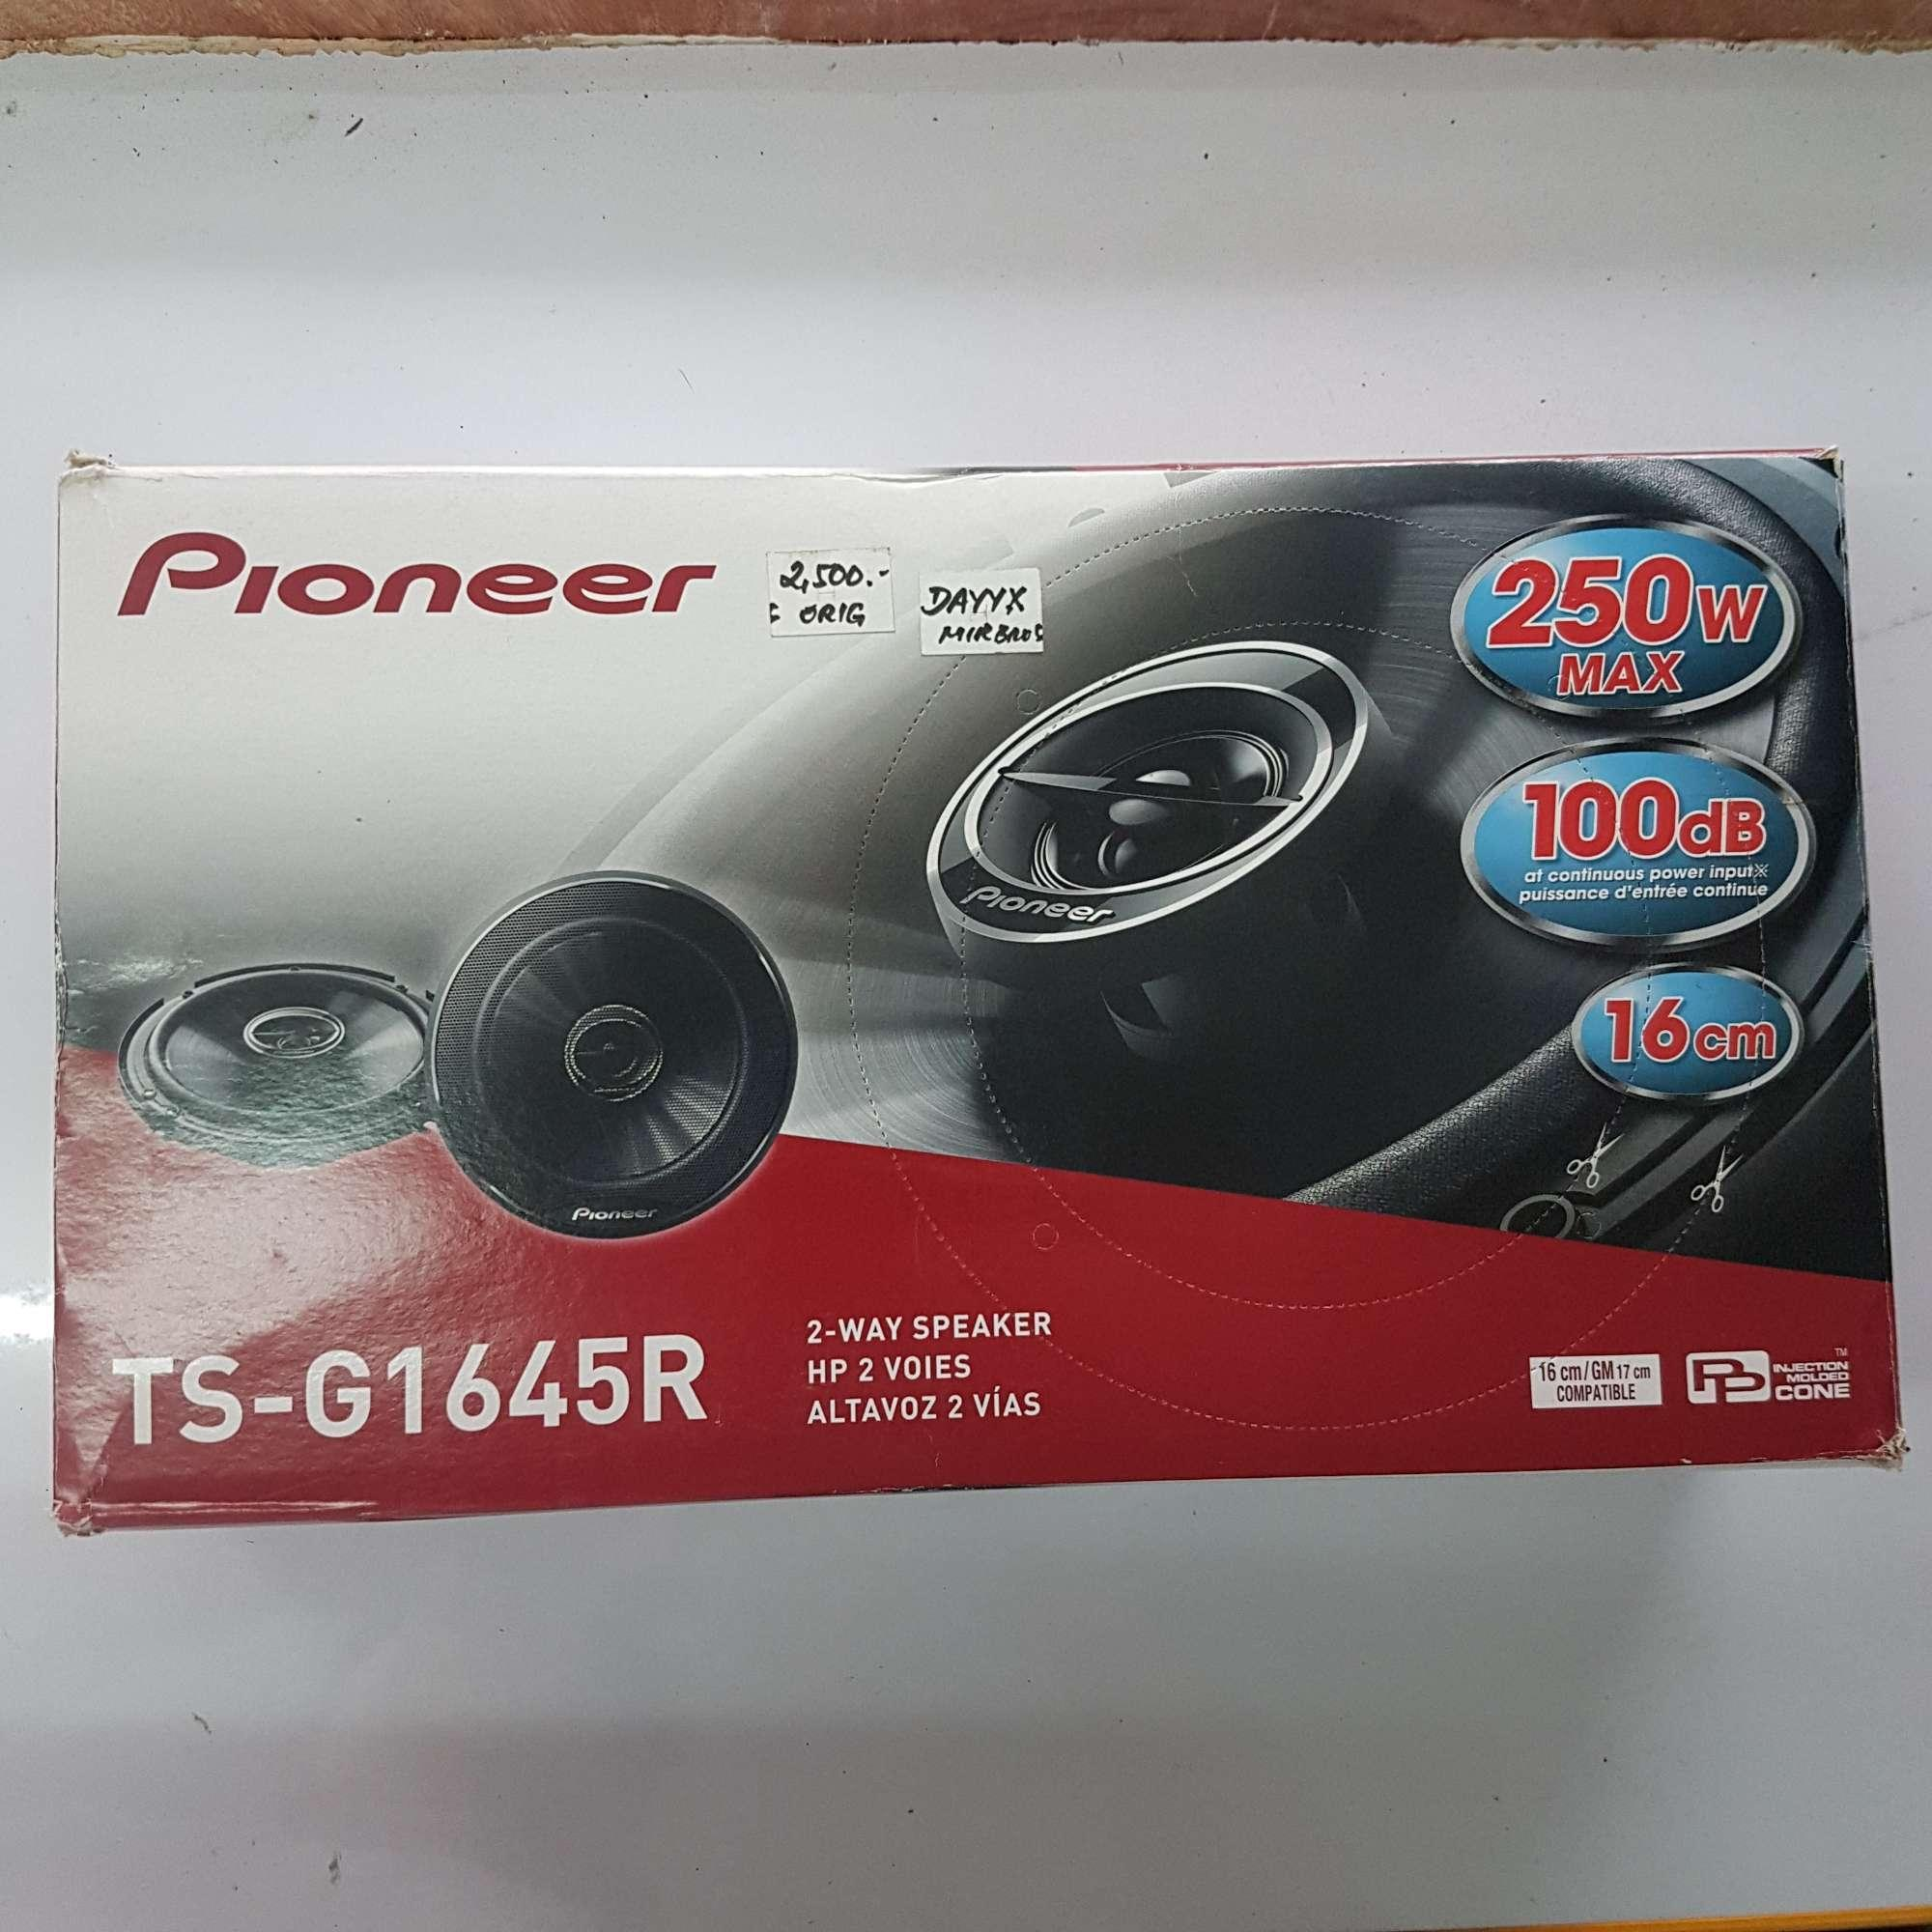 Pioneer Philippines Car Speakers For Sale Prices Speaker Ts F1634r Coaxial 2way 6 2 Way Pair G1645r